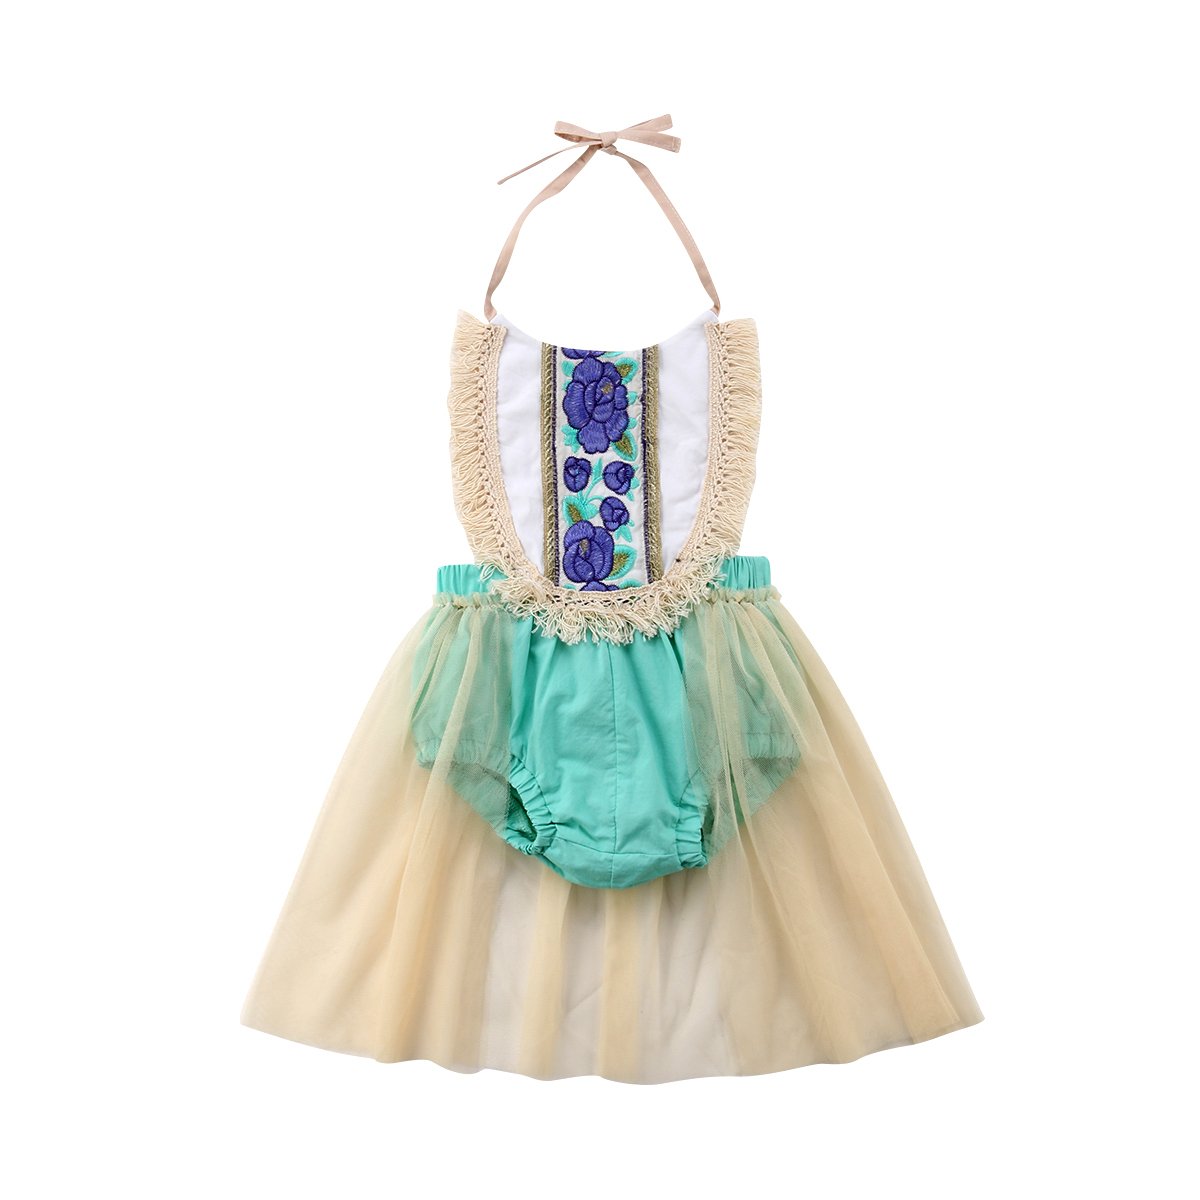 Newborn Infant Kids Baby Girl Clothes Cute Party Tulle